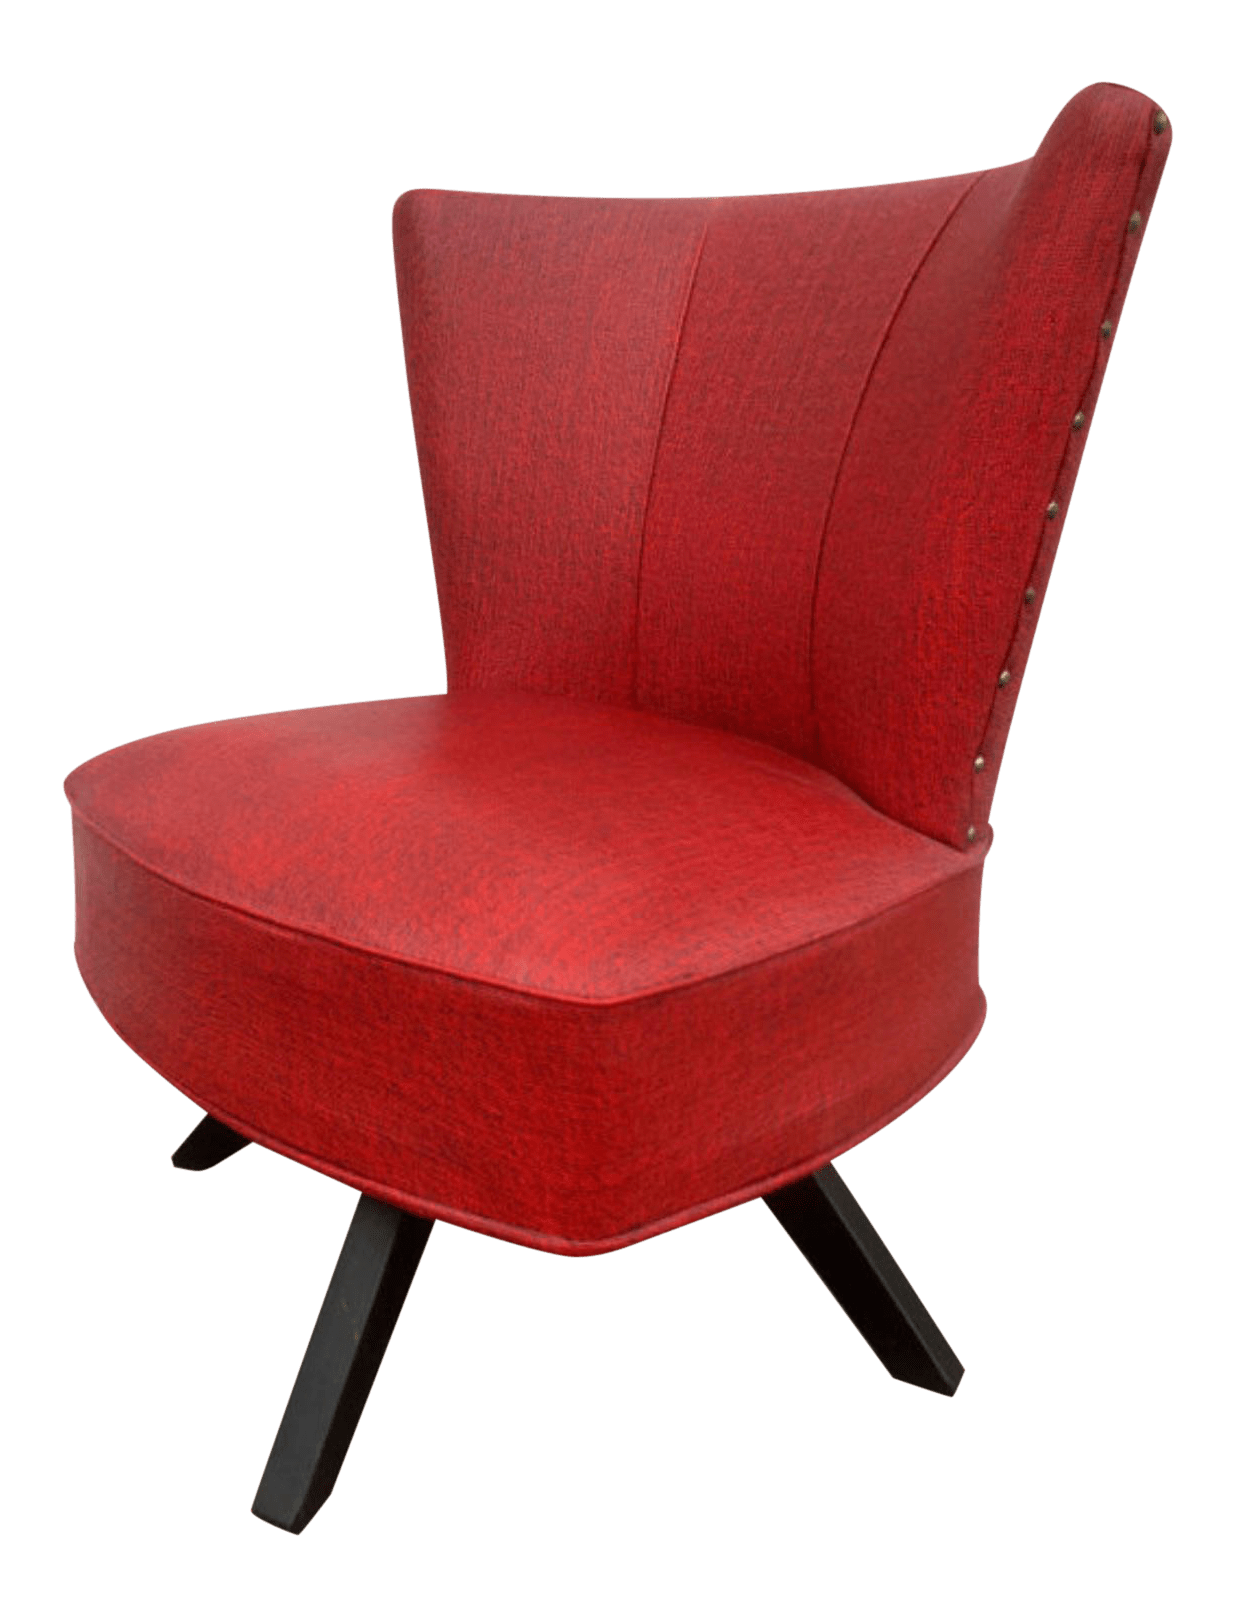 Red Swivel Chair Mid Century Red Swivel Chair Chairish